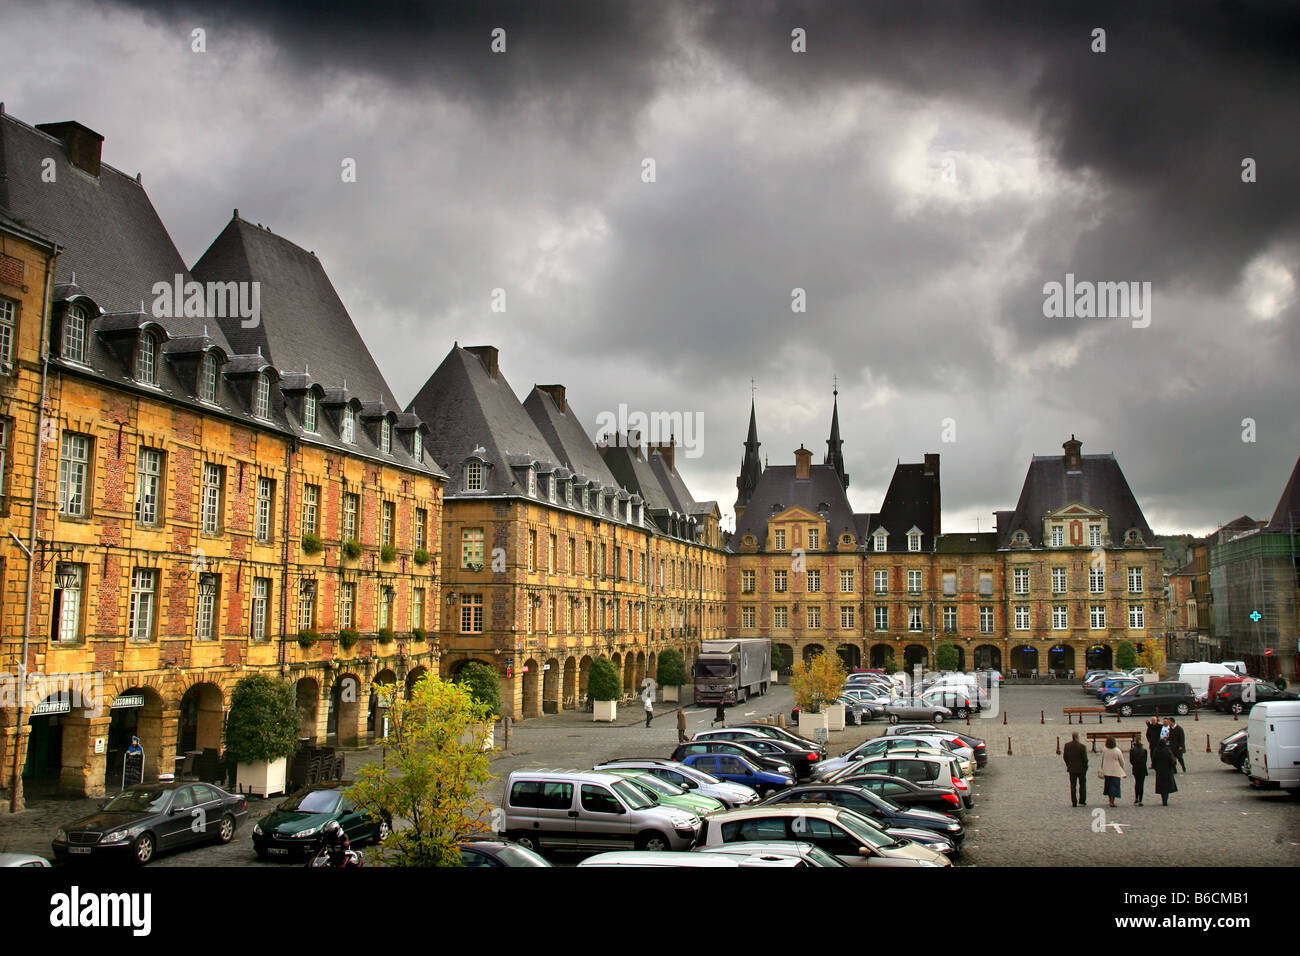 Charleville-Mezieres in the Ardennes, France. - Stock Image